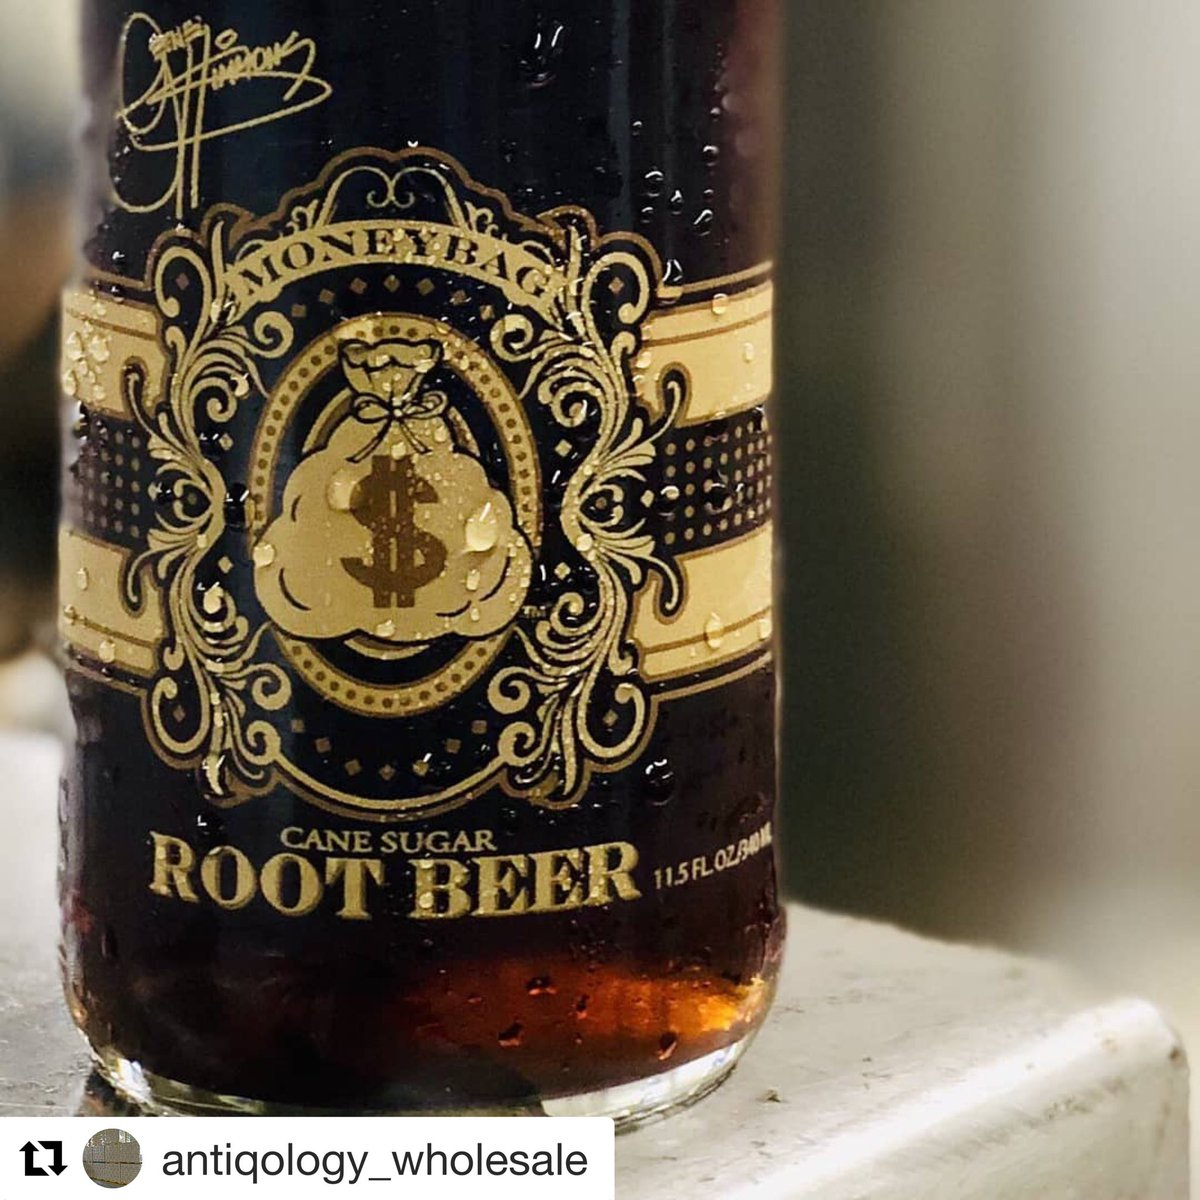 #Repost @antiqology_wholesale with @get_repost We are now stocking the Gene Simmons Moneybags sodas. All natural flavors, pure cane sugar, and screen-printed glass bottles. All flavors IN STOCK ready for immediate delivery to your business! #Antiqology #CraftSoda